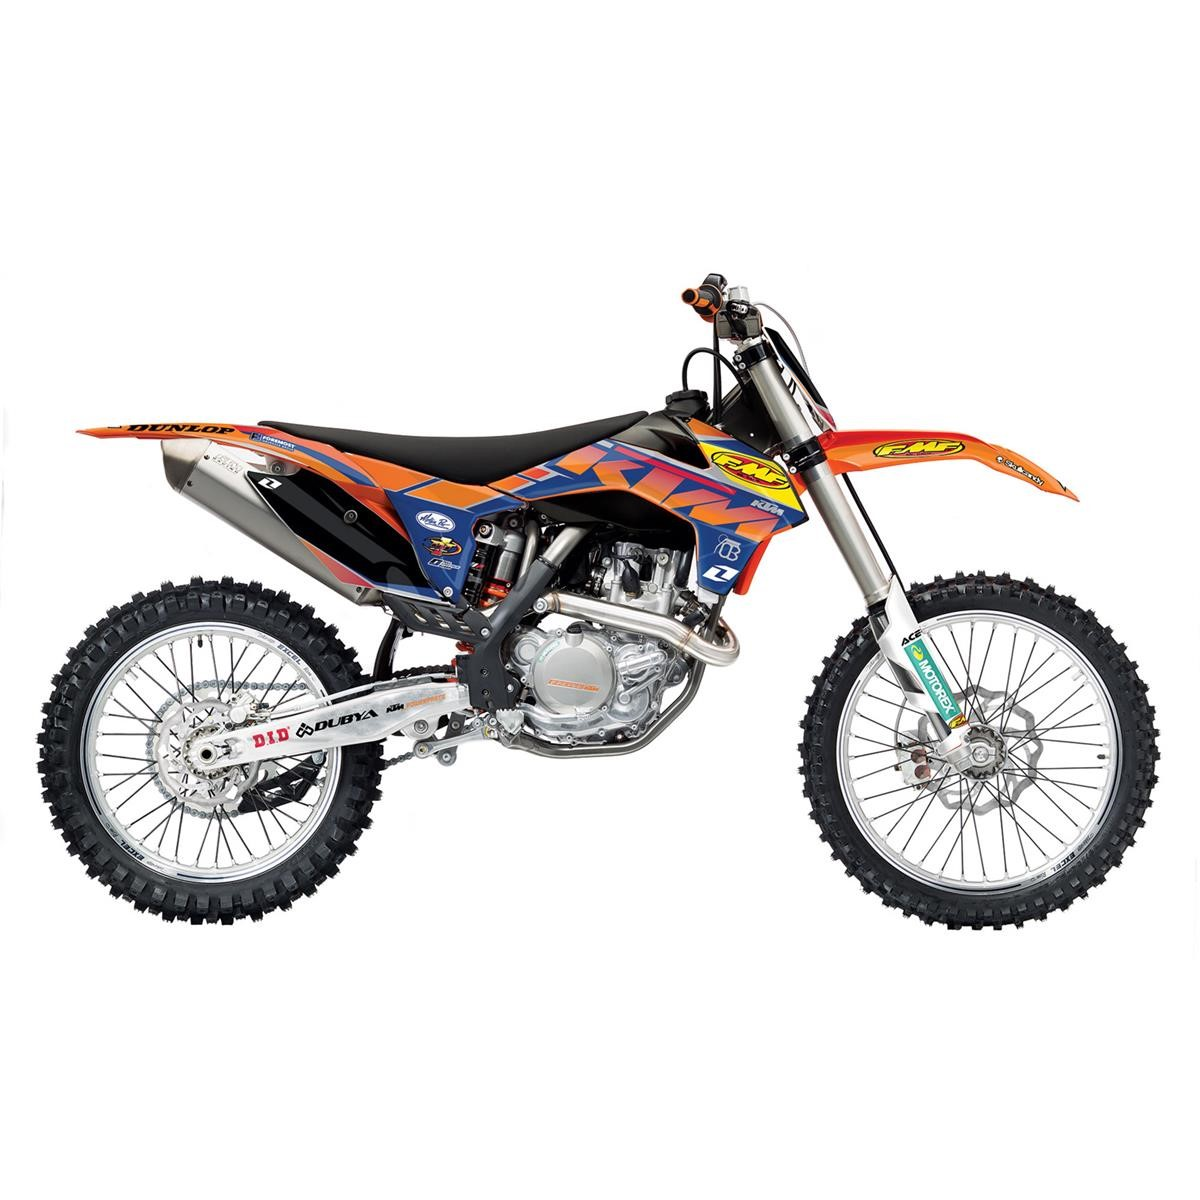 Ktm Sx Kit For Sale